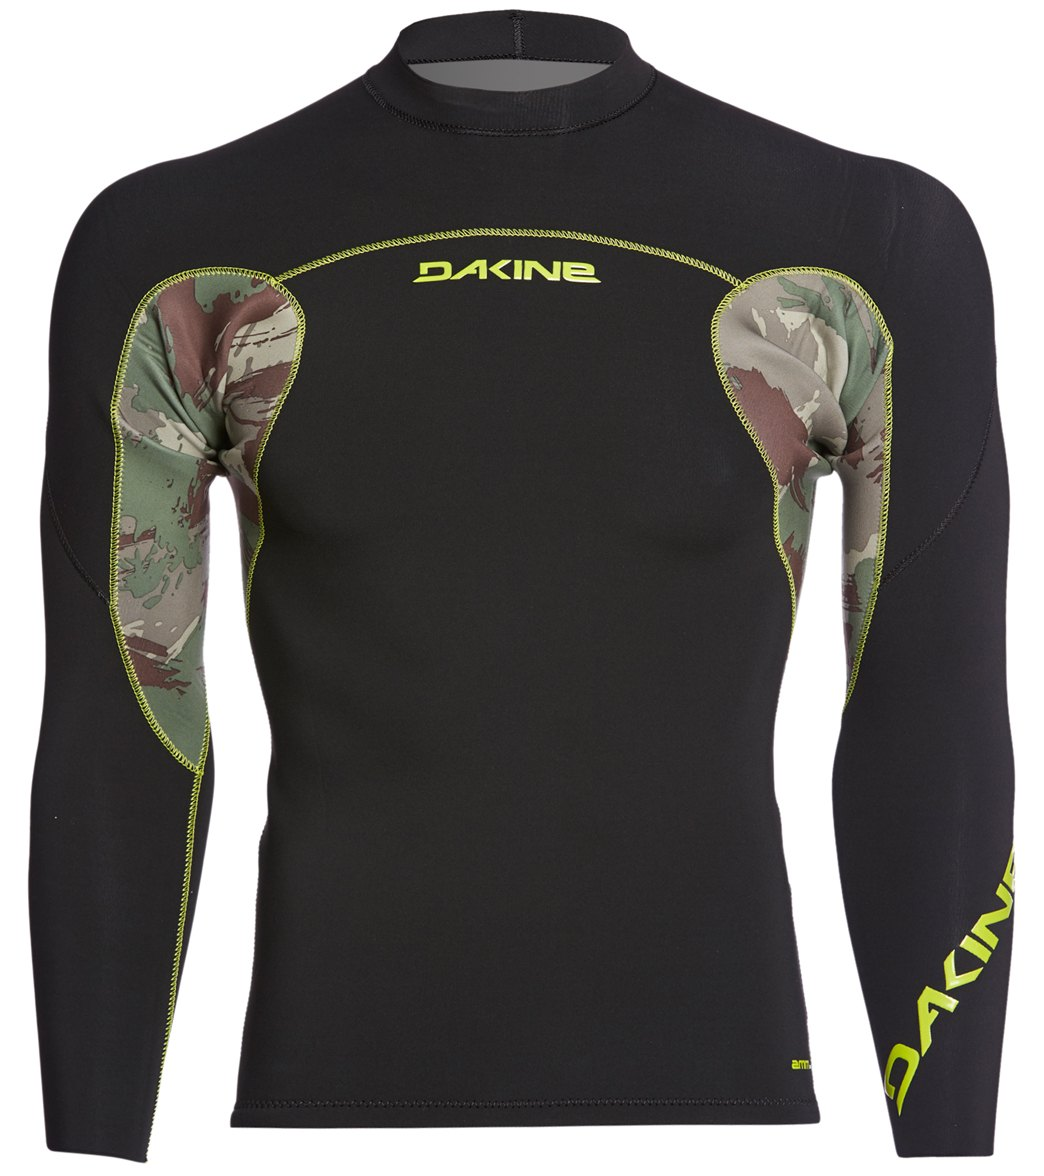 1a2e059e12c4f Dakine Men's 2mm Neo Camo Long Sleeve Neoprene Jacket at SwimOutlet.com - Free  Shipping